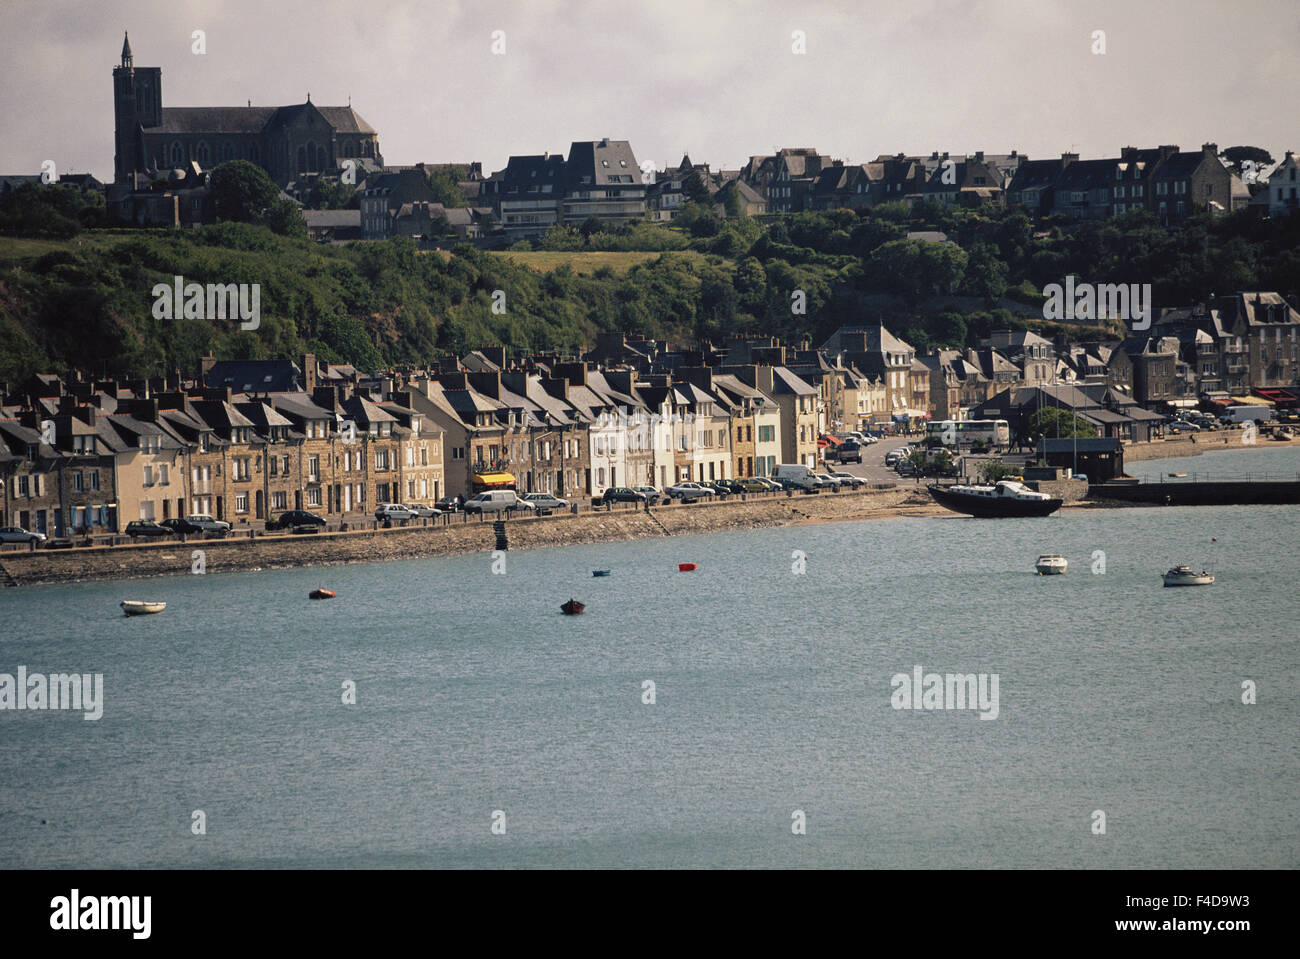 France, Brittany, Ille-et-Vilaine, Cancale, Morning view of town. (Large format sizes available) - Stock Image